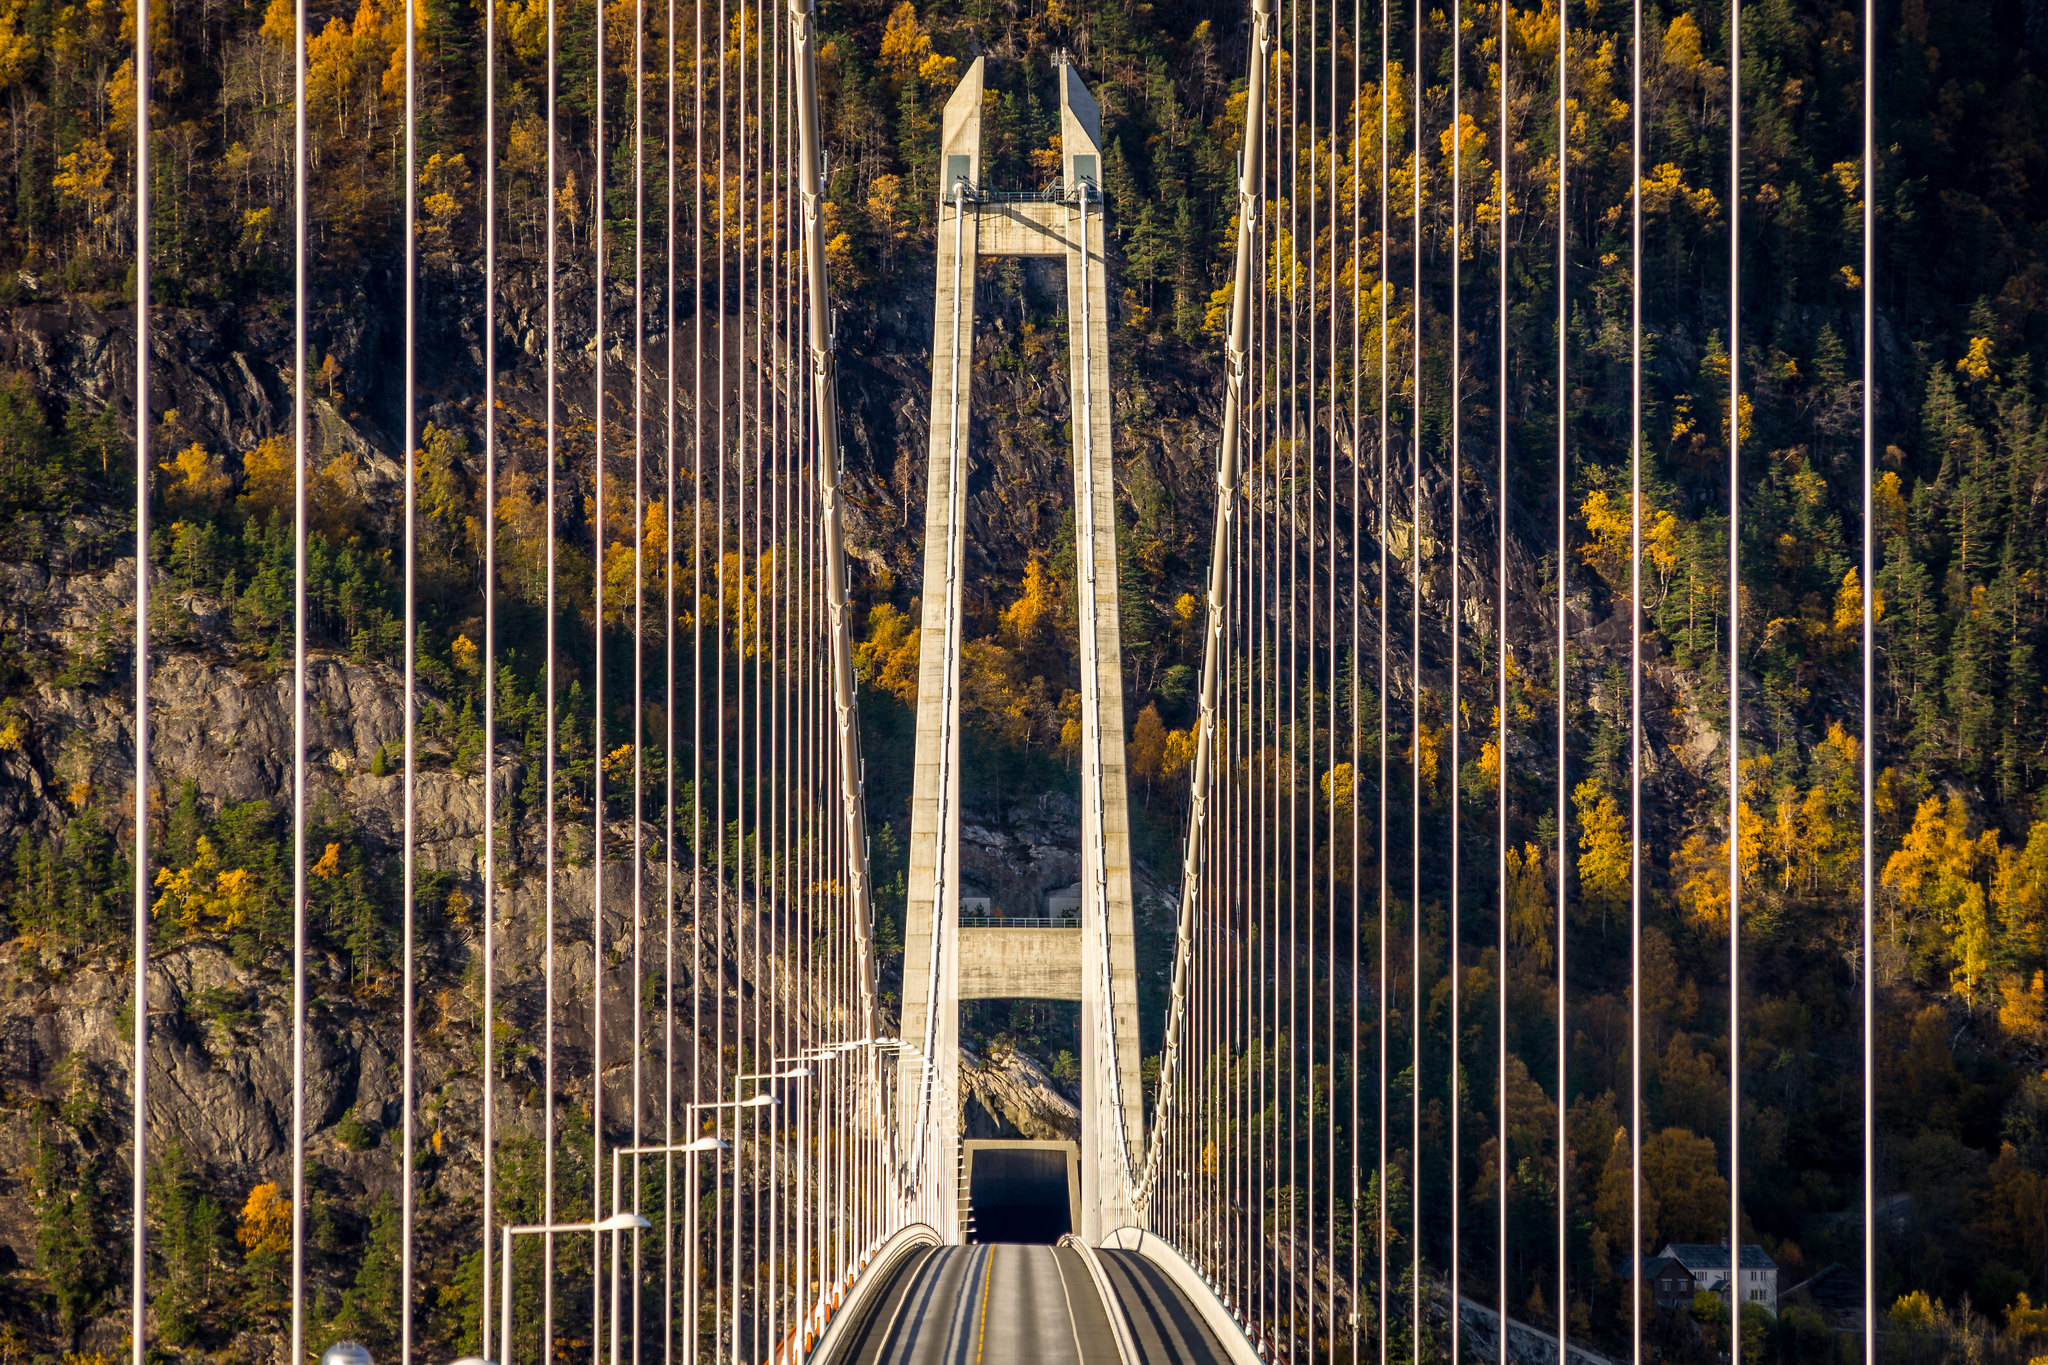 Hardanger Bridge, Hardangerbrua. Vallavik, Norway